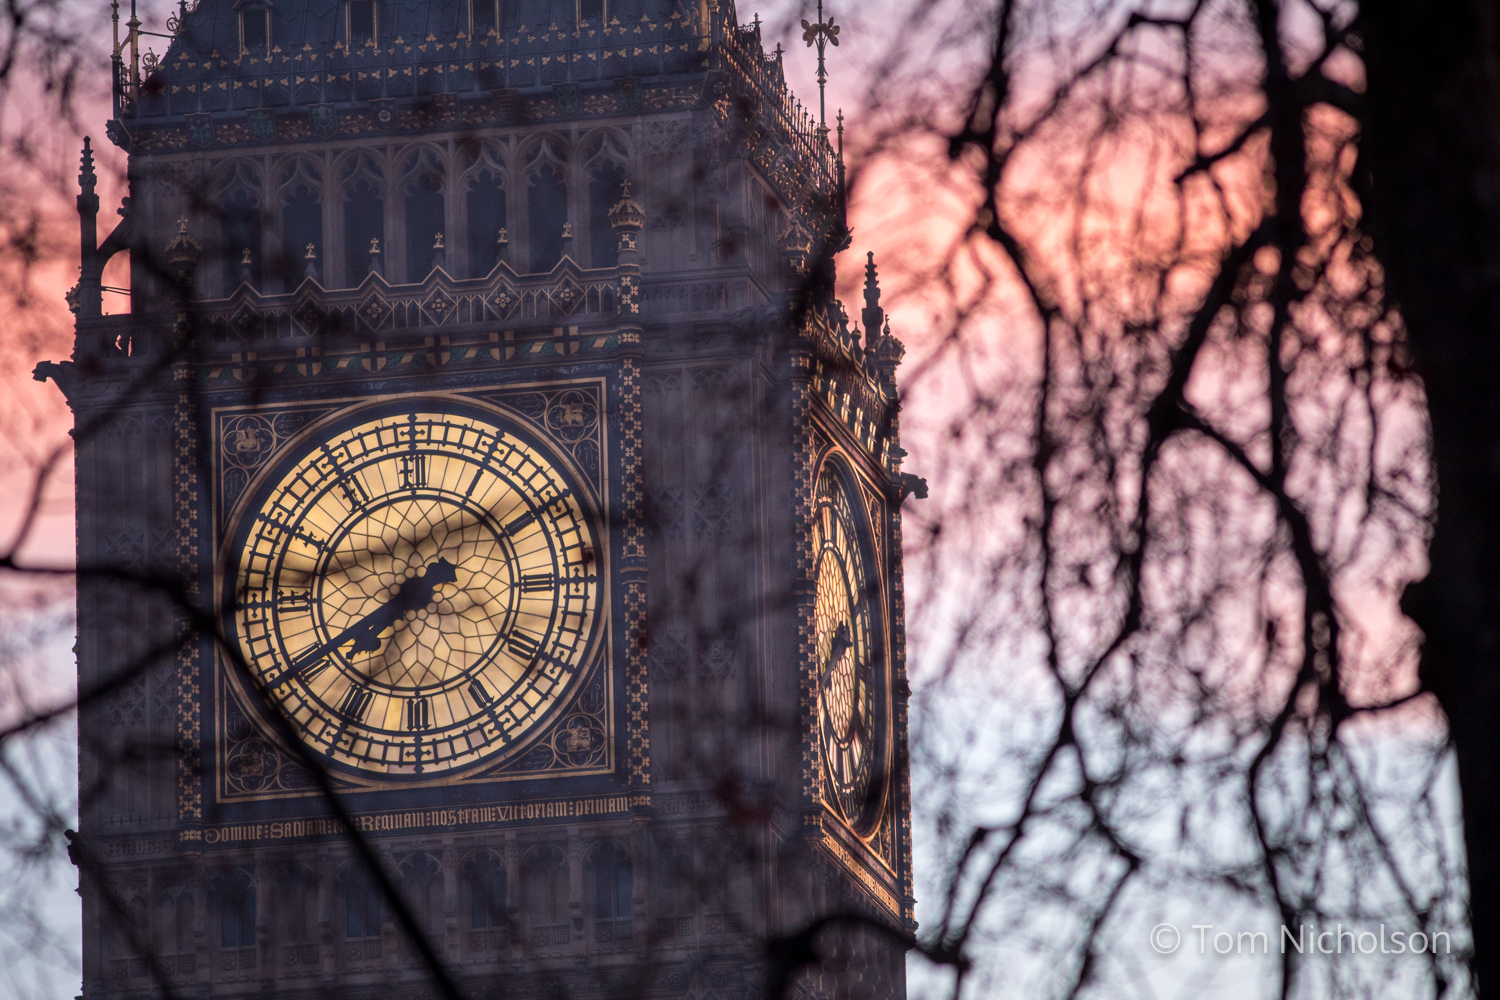 ©2017 Tom Nicholson. 24/01/2017. London, UK. The sun rises over Big Ben, in Westminster. Today Lord Neuberger will read a judgement declaring whether ministers or parliament have legal authority to approve Brexit.